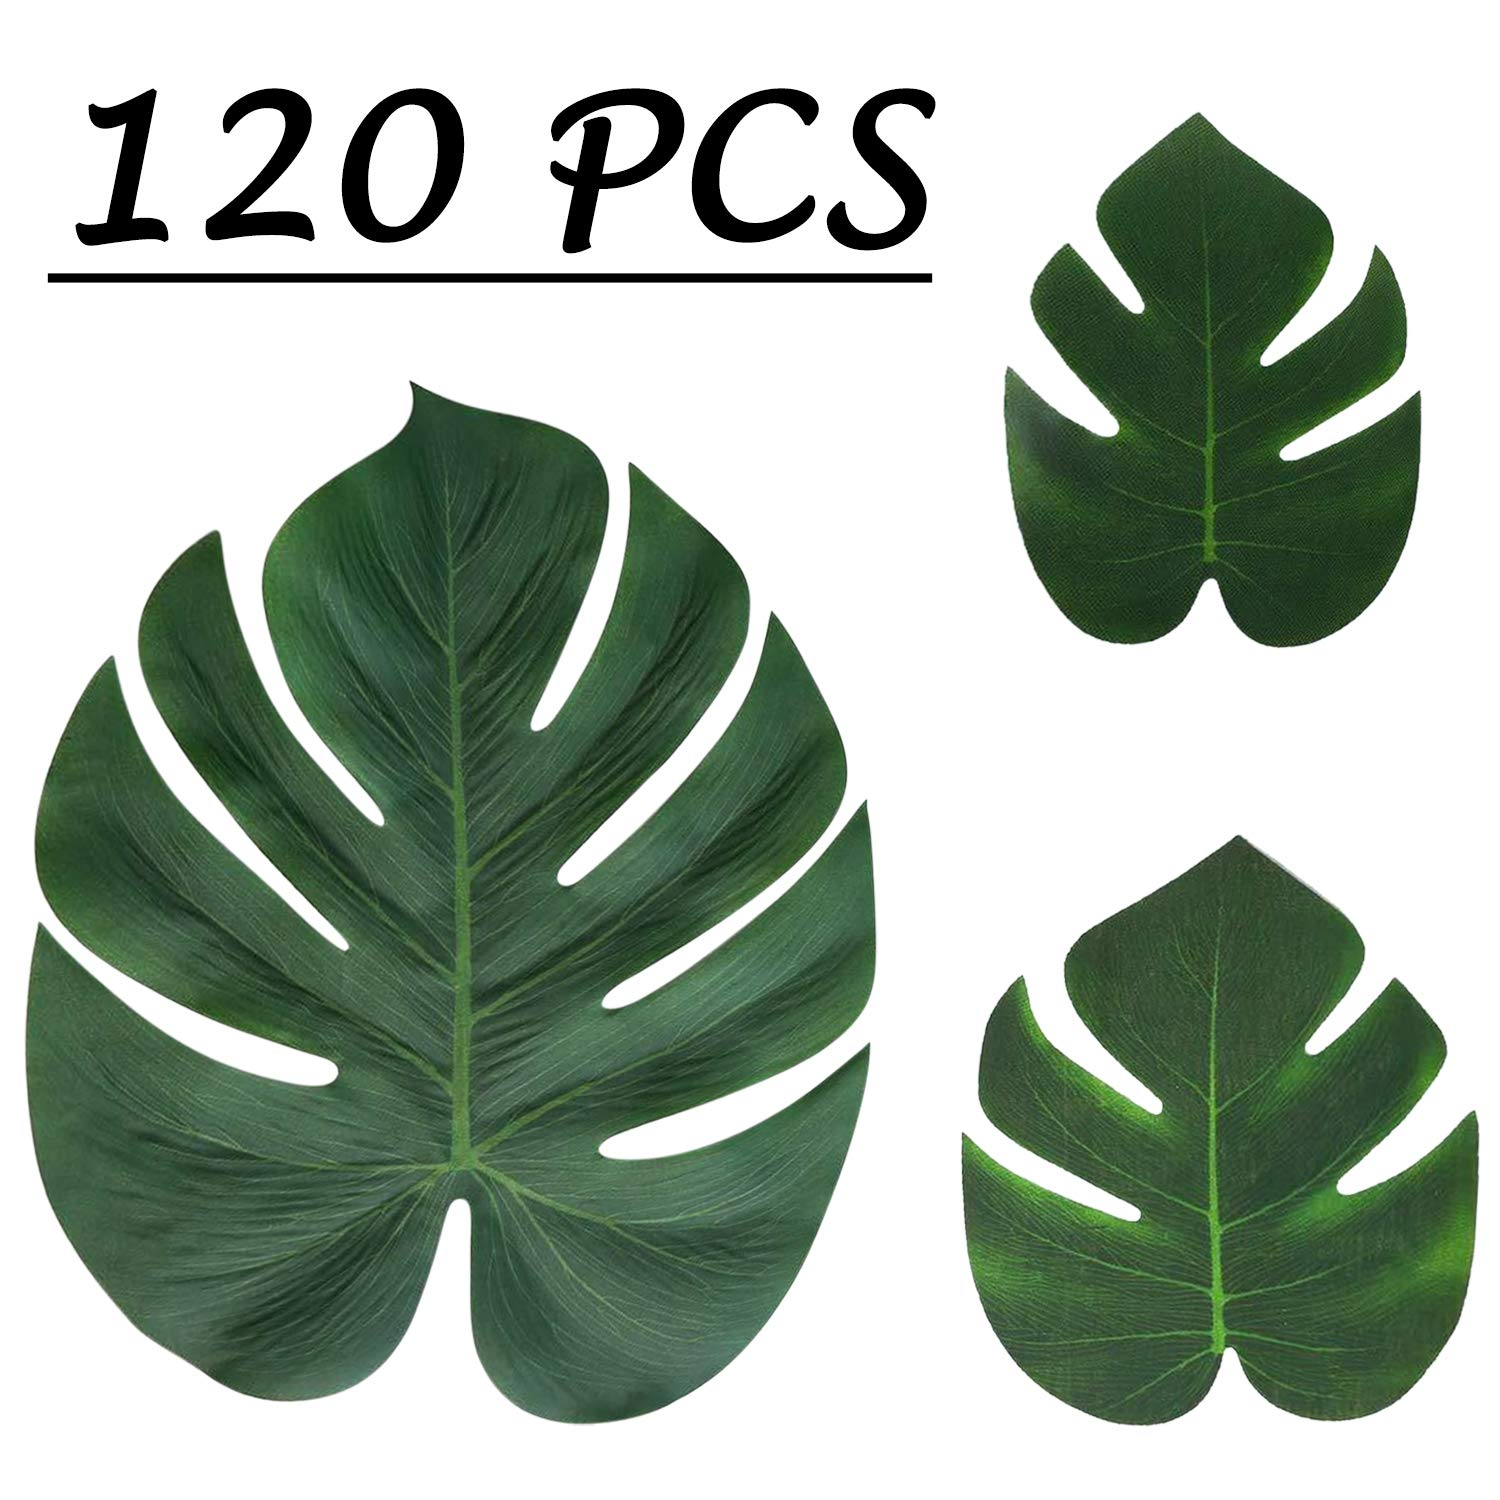 Moon Boat Tropical Palm Leaves Plant Imitation Leaf-Hawaiian/ Luau/Jungle Party Table Decorations (120PCS)